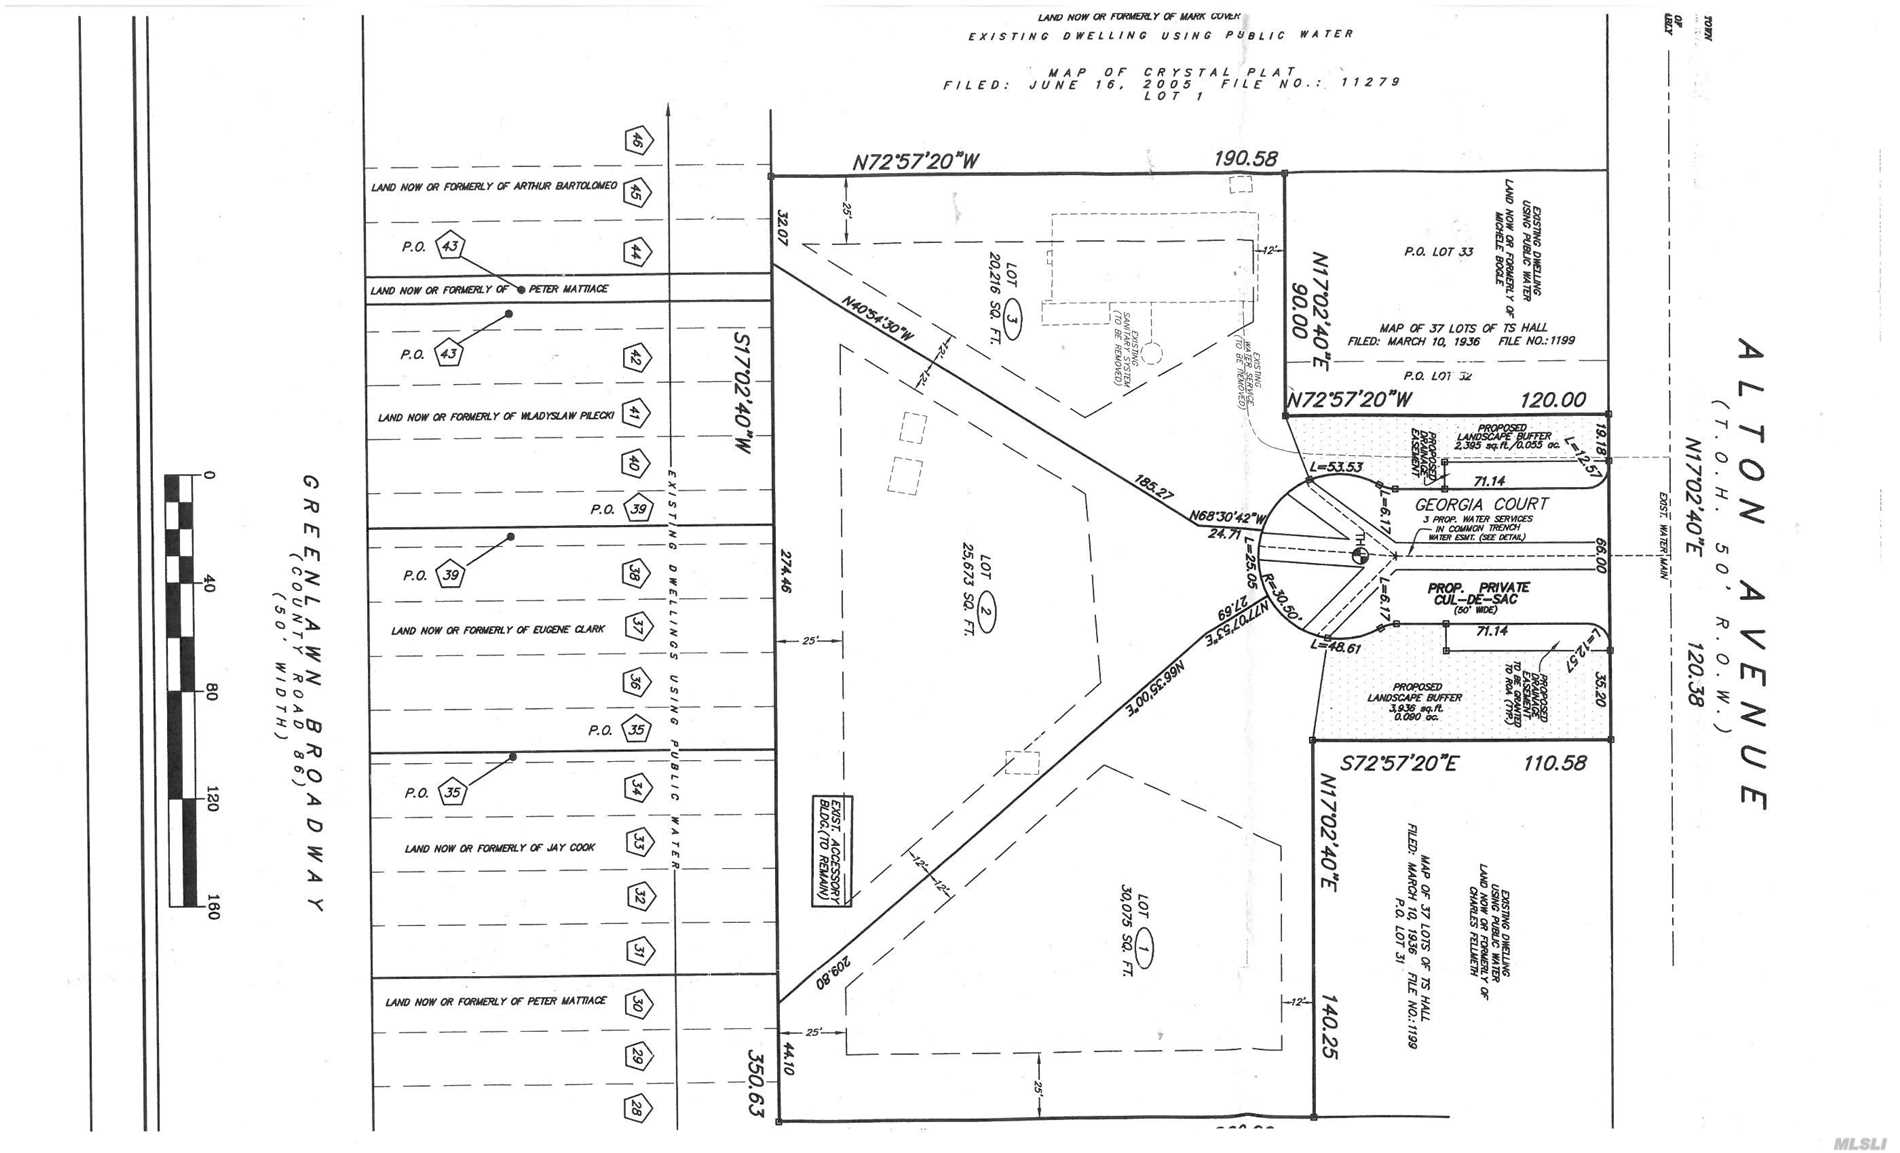 Great Opportunity For 3 Lot Subdivision Of 1/2 Acre Lots In Harborfields Sd! Flat, Level Property On Cul De Sac. Subdivision Had Final Approval In 2015. Need Buyer To File Map; Post Bonds, As Well As Other Minor Details.